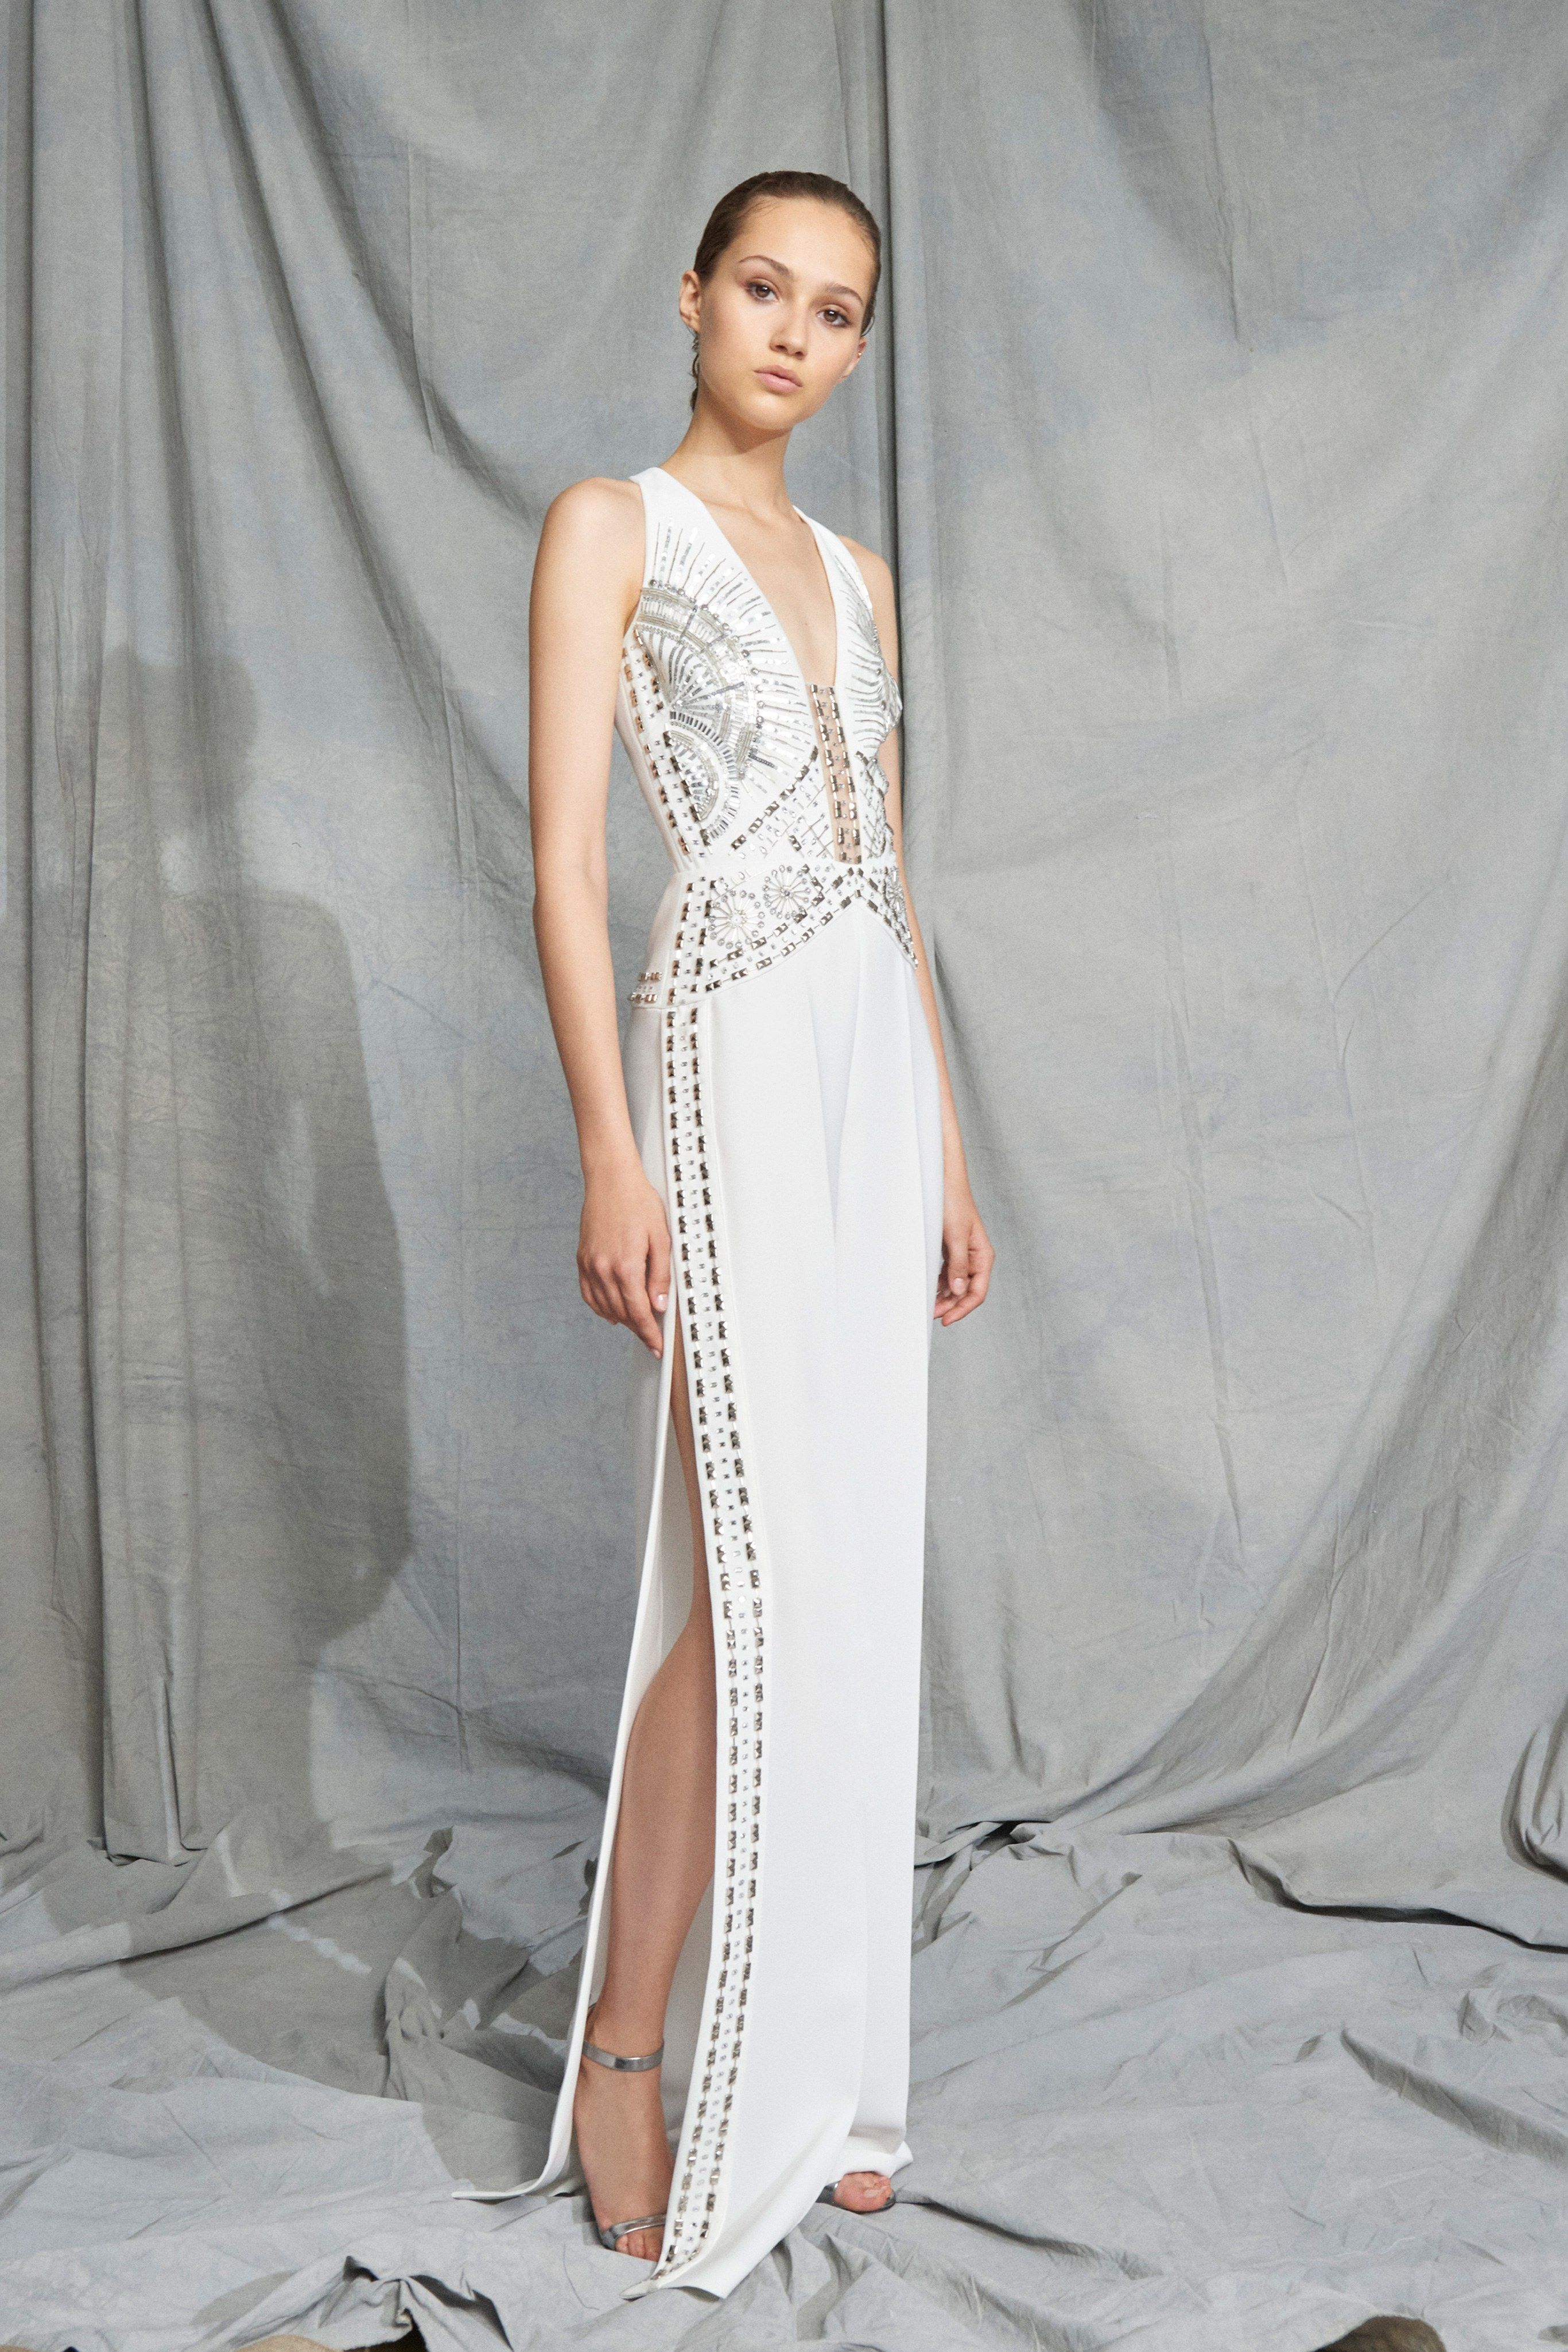 dc4c7348b4a Zuhair Murad Resort 2019 Paris Collection - Vogue  clothes   beautifulclothes  fashion  apparel  fashiontrends  style  stylewatch   fashioninspiration ...